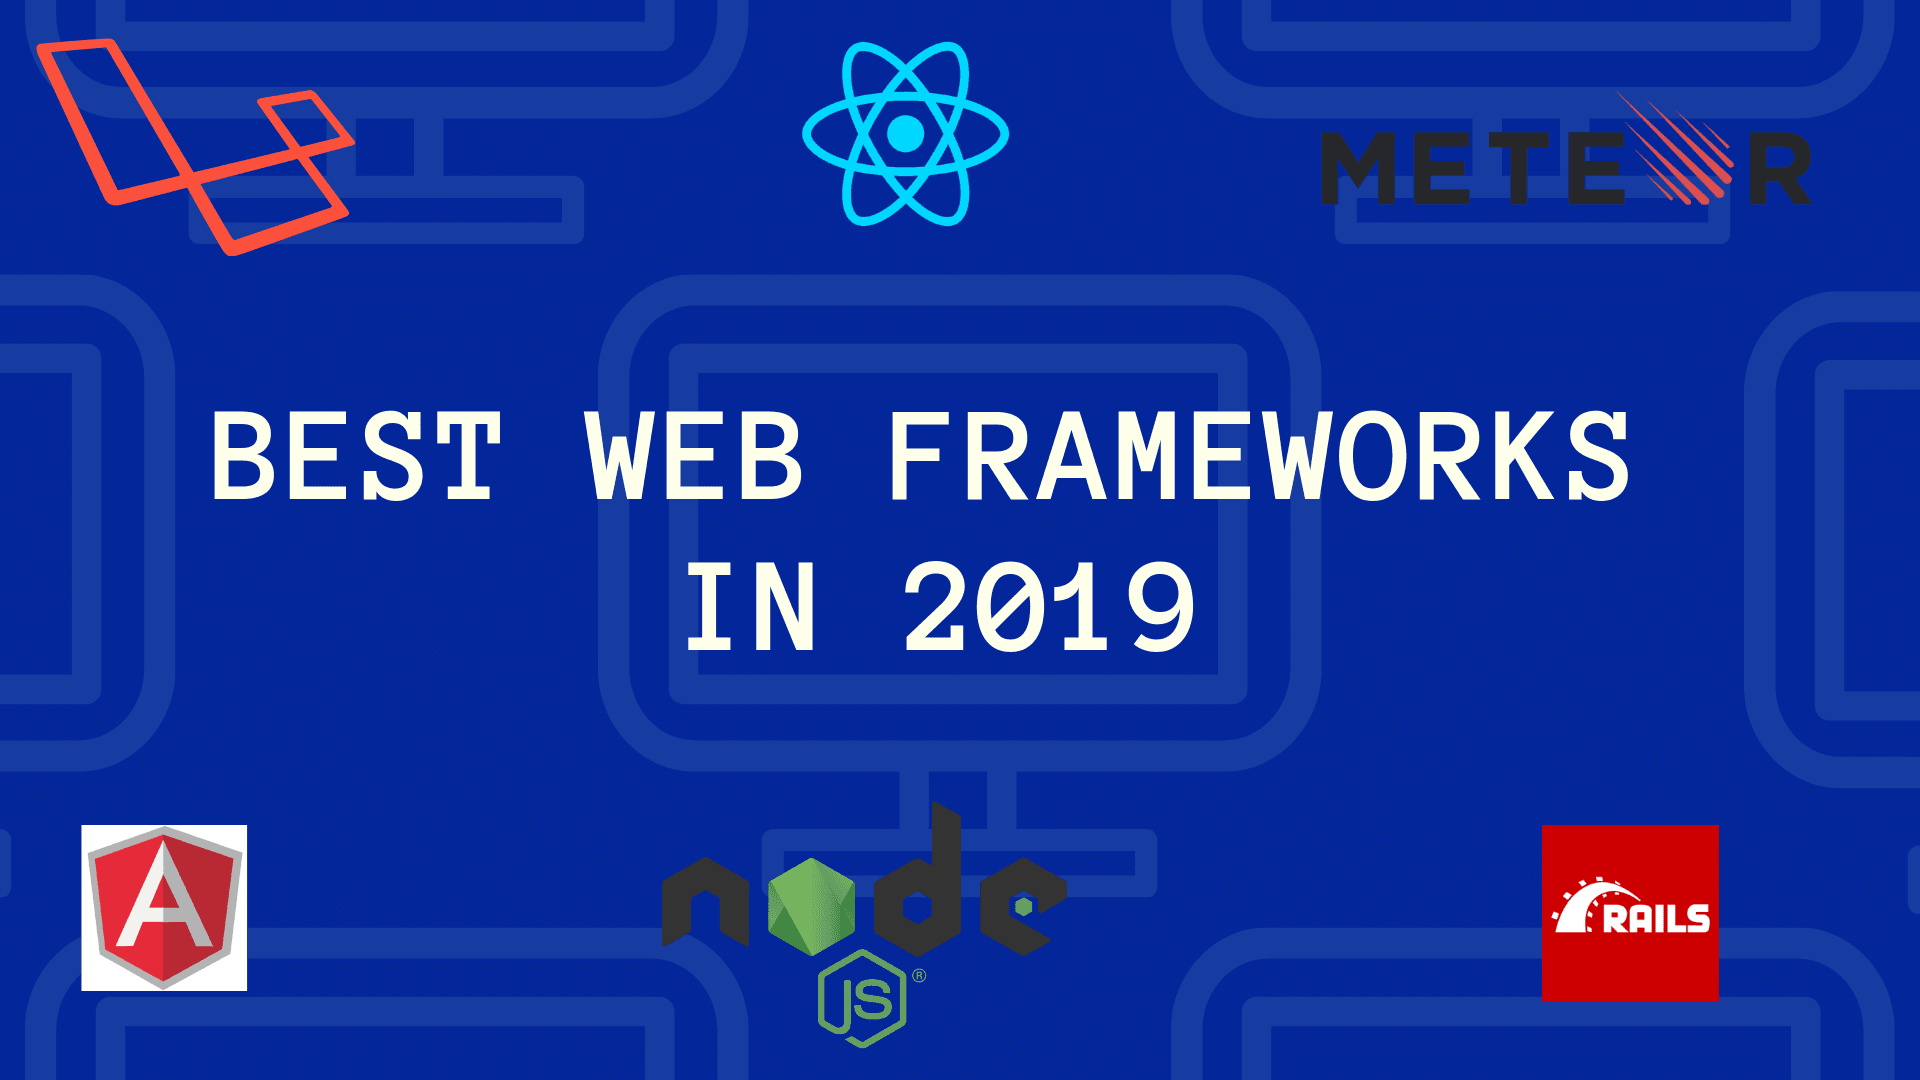 Best Web frameworks in 2019